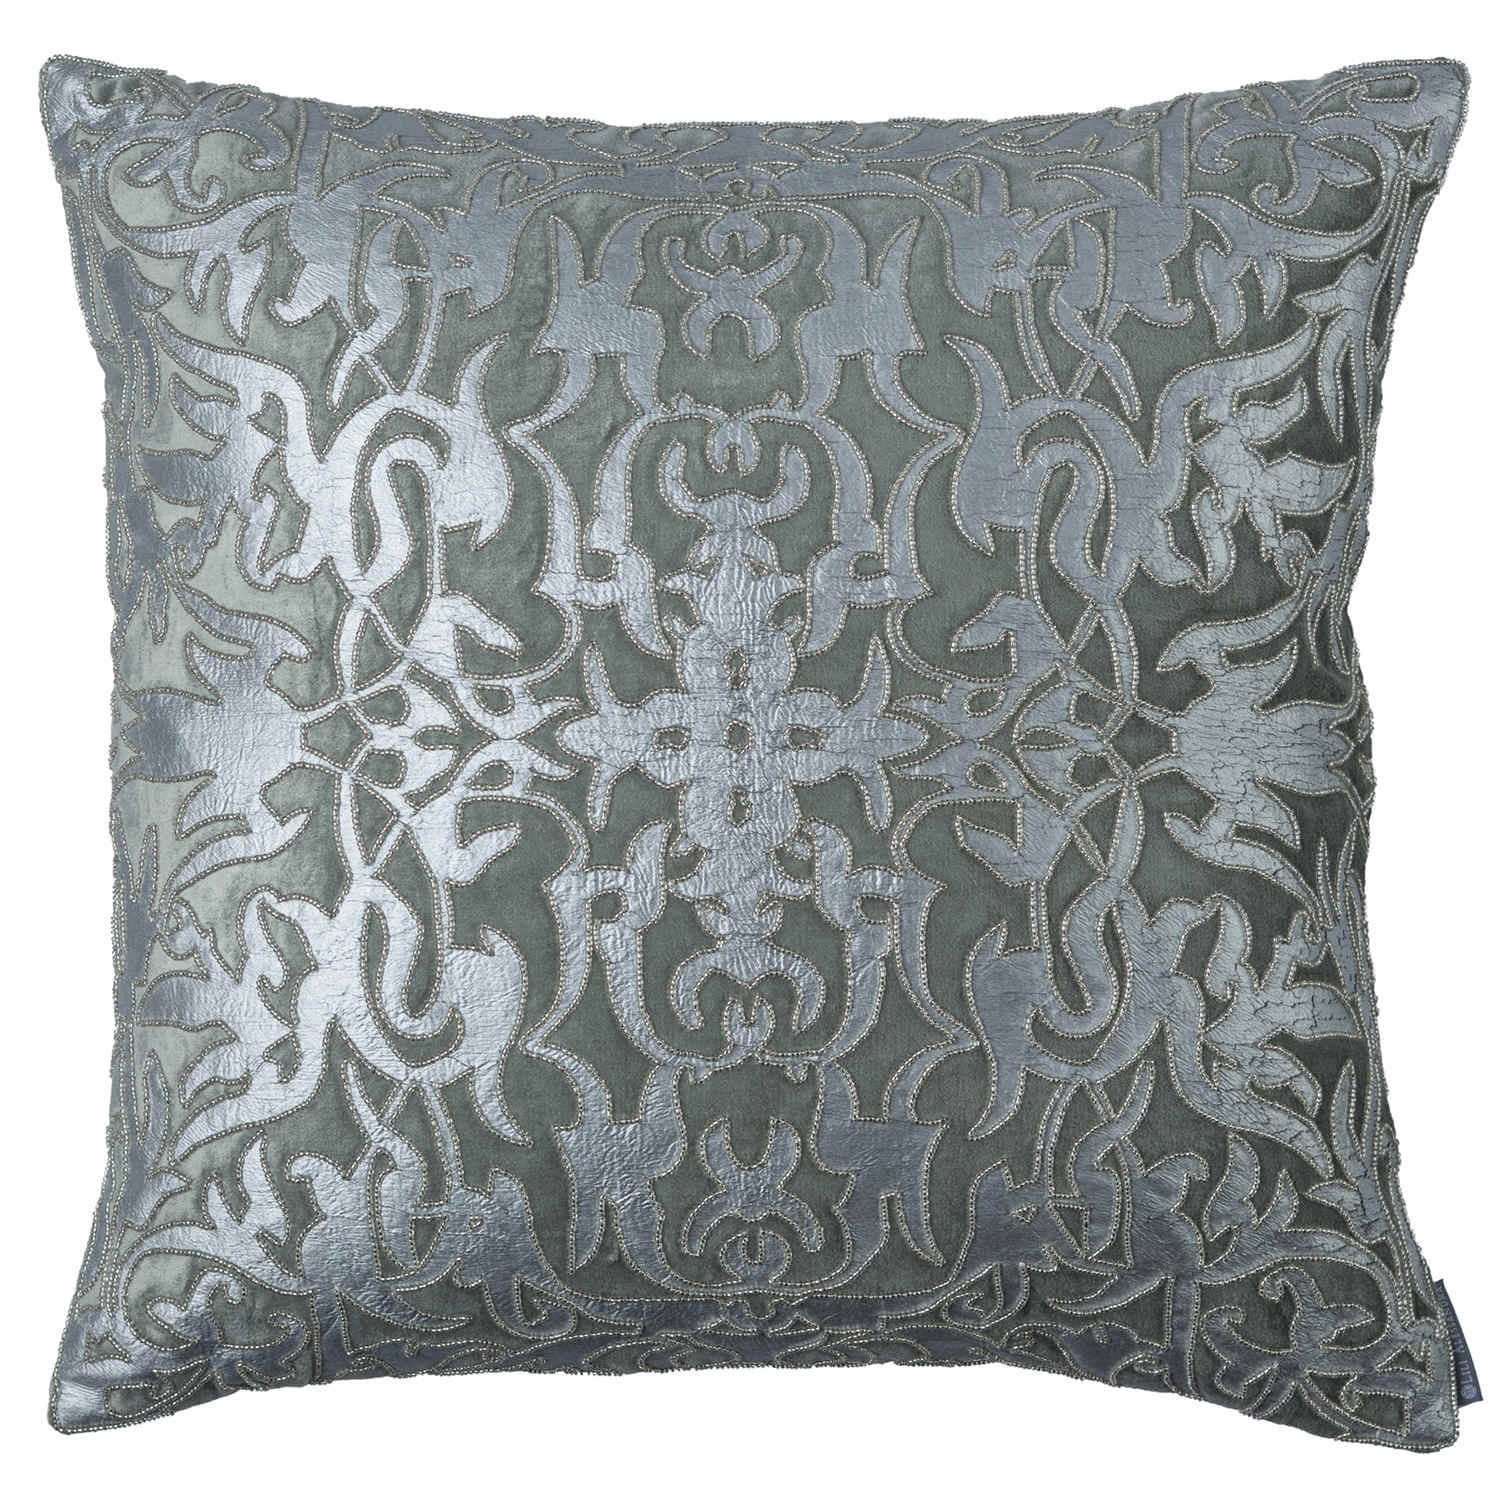 right can jewel of tone buy the pillow stunning throw now most pillows you